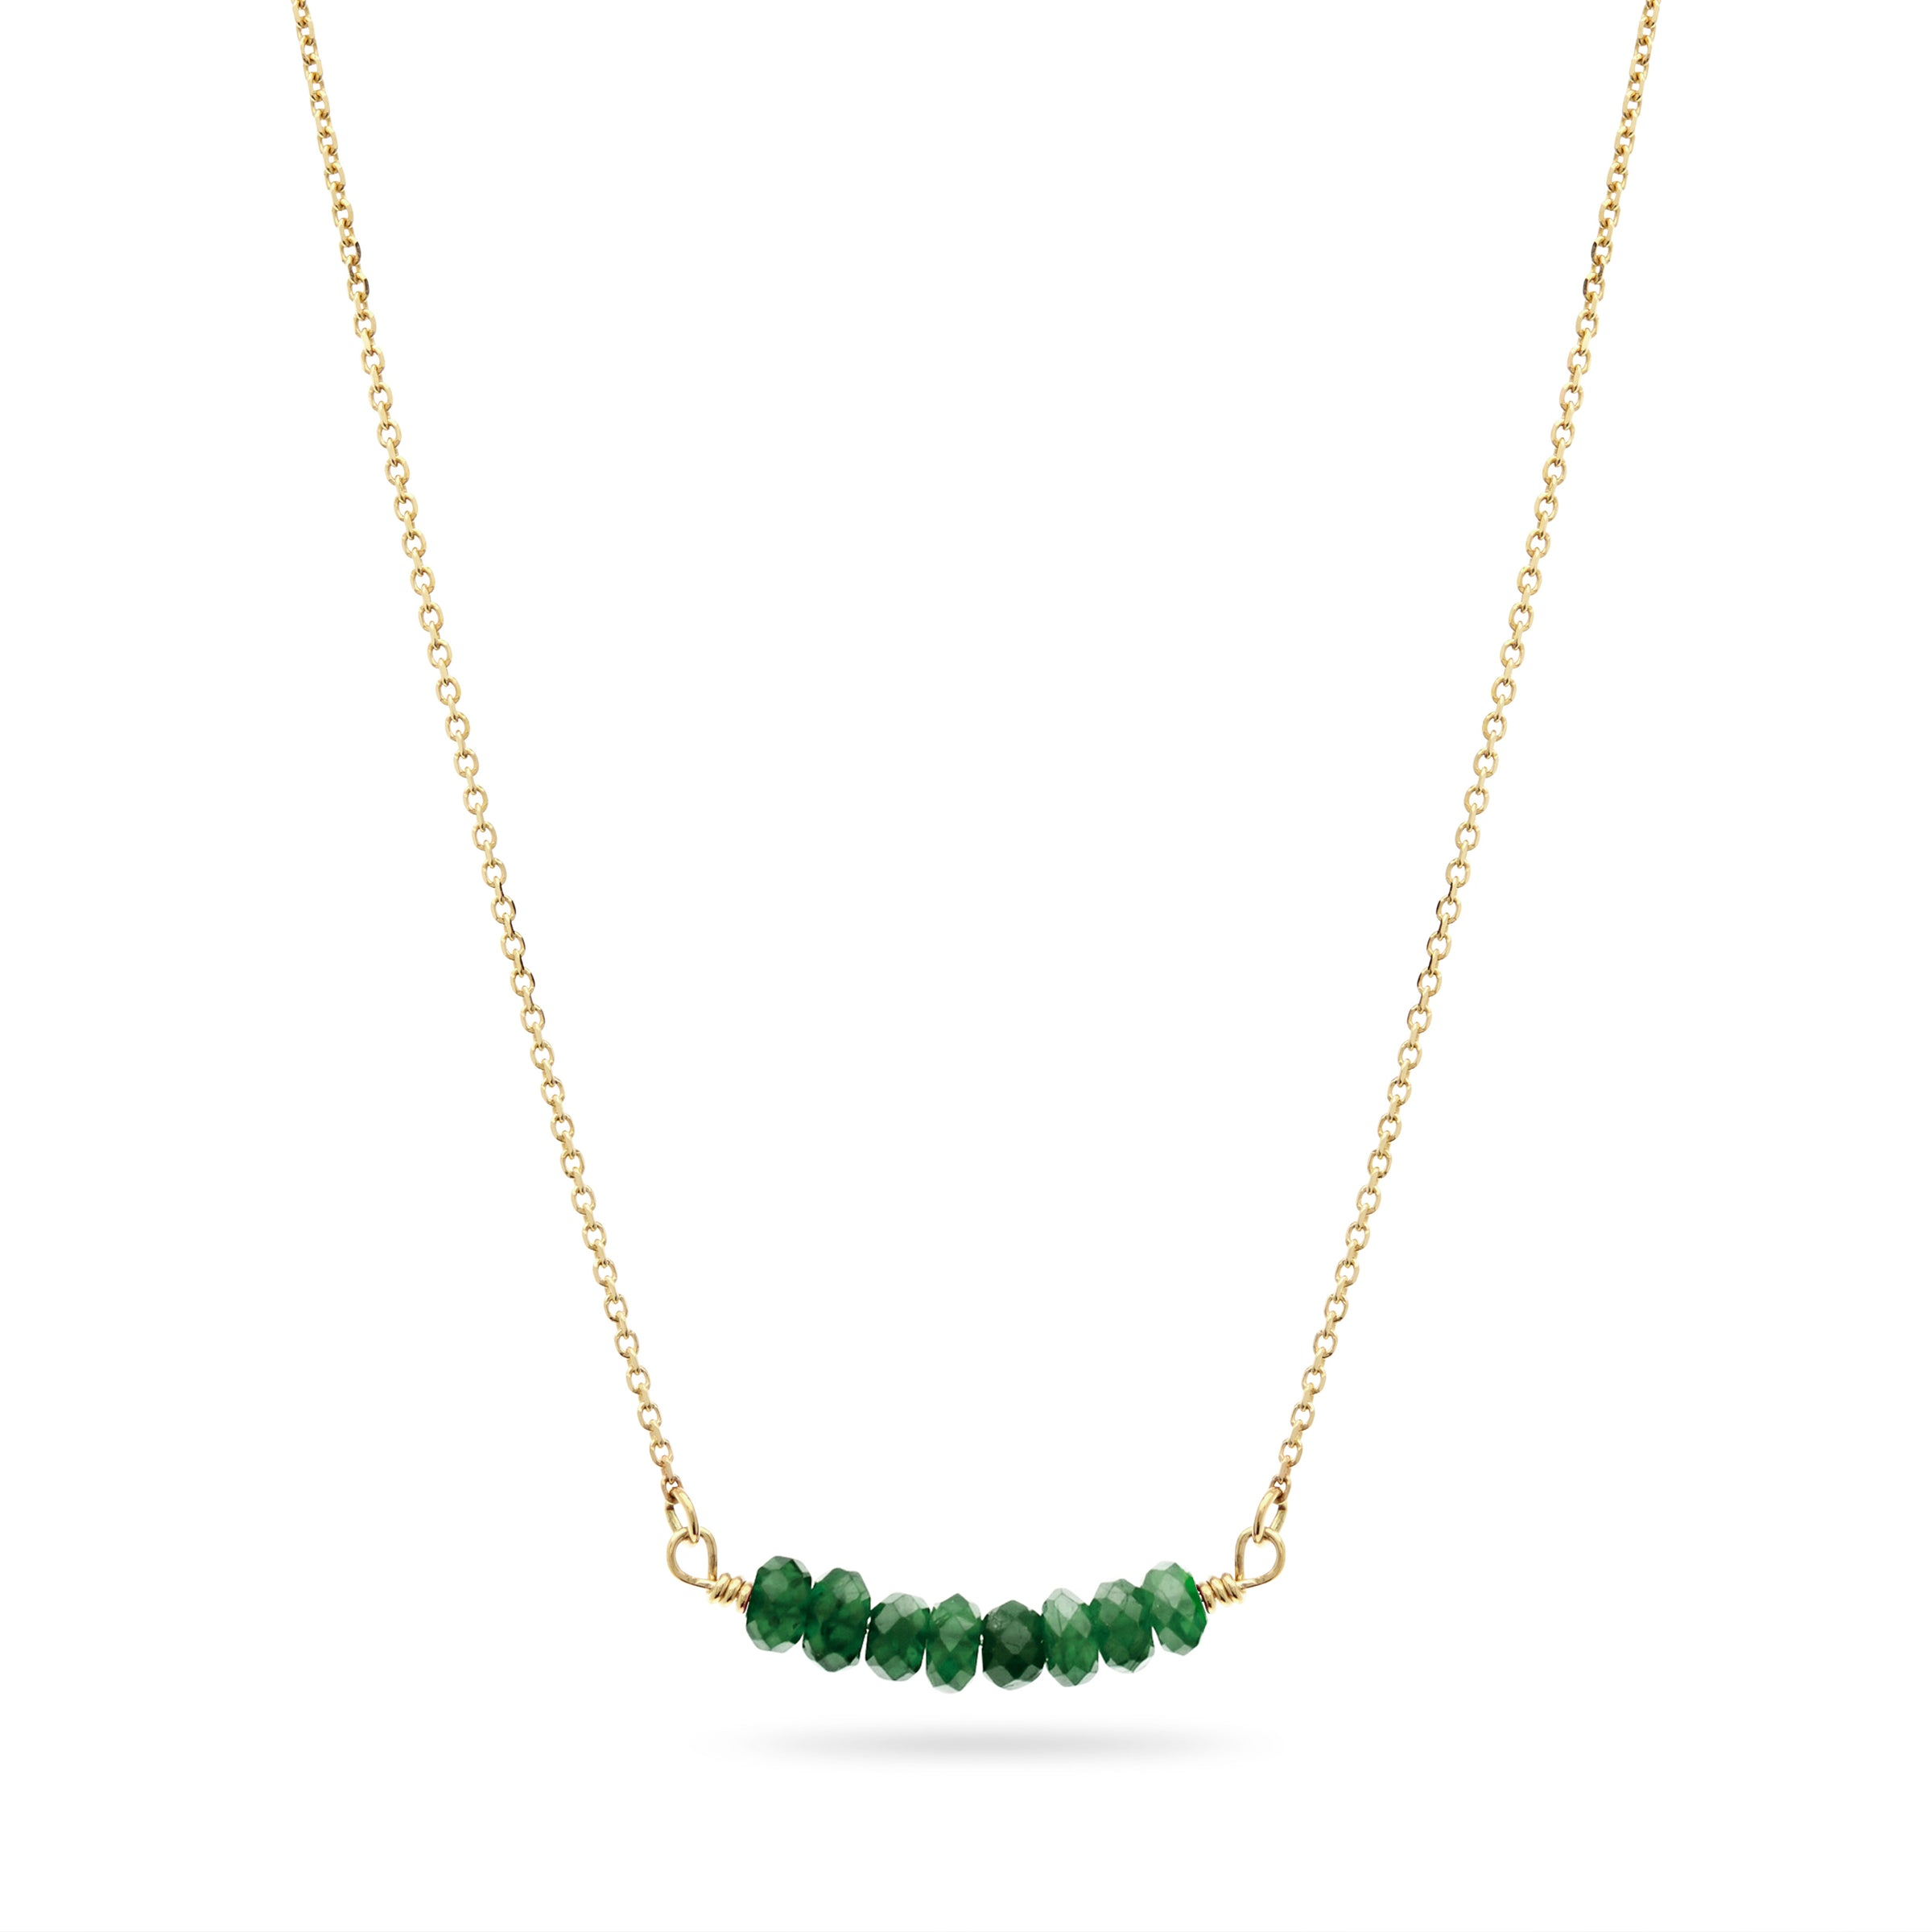 Emerald Smile Necklace